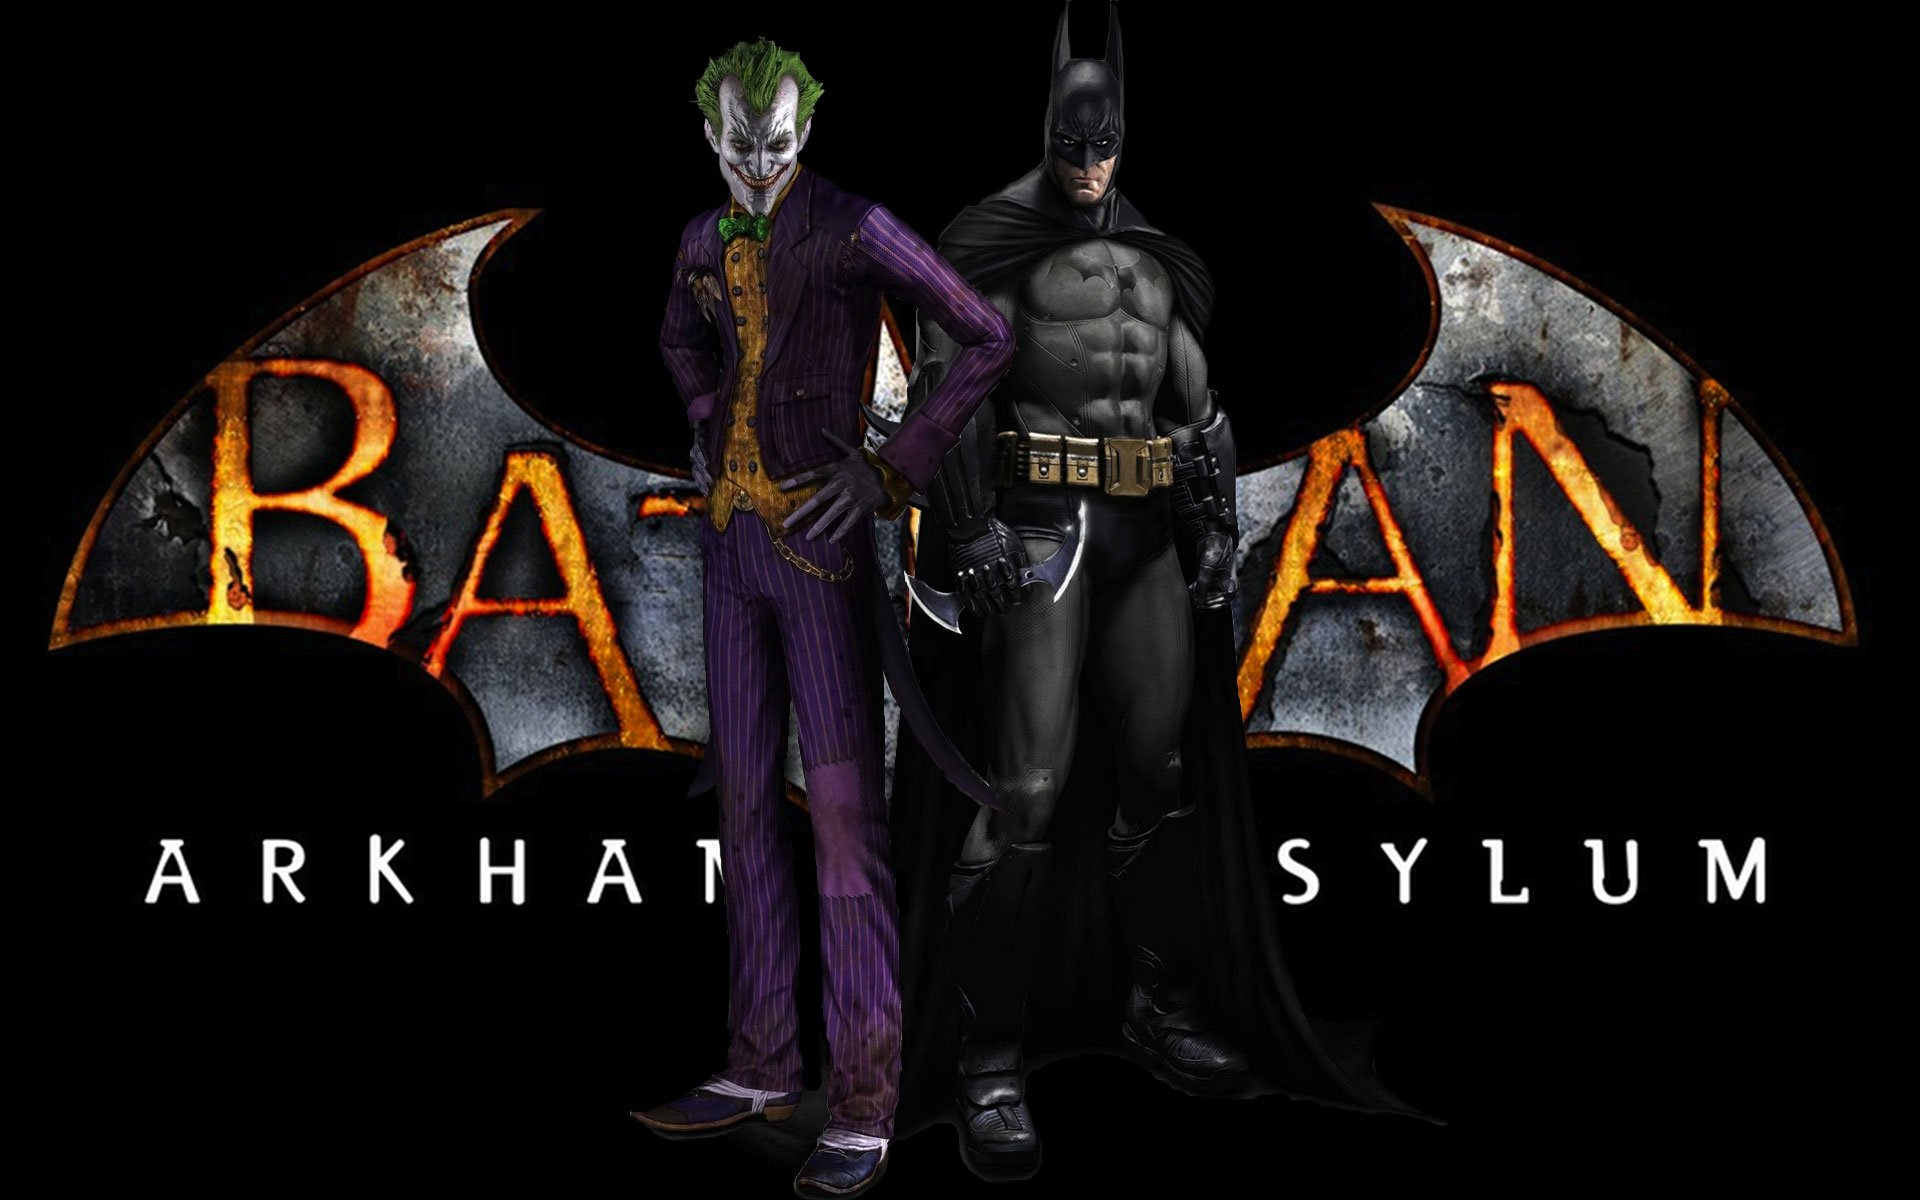 Batman Arkham Asylum Wallpaper HD 1920x1200